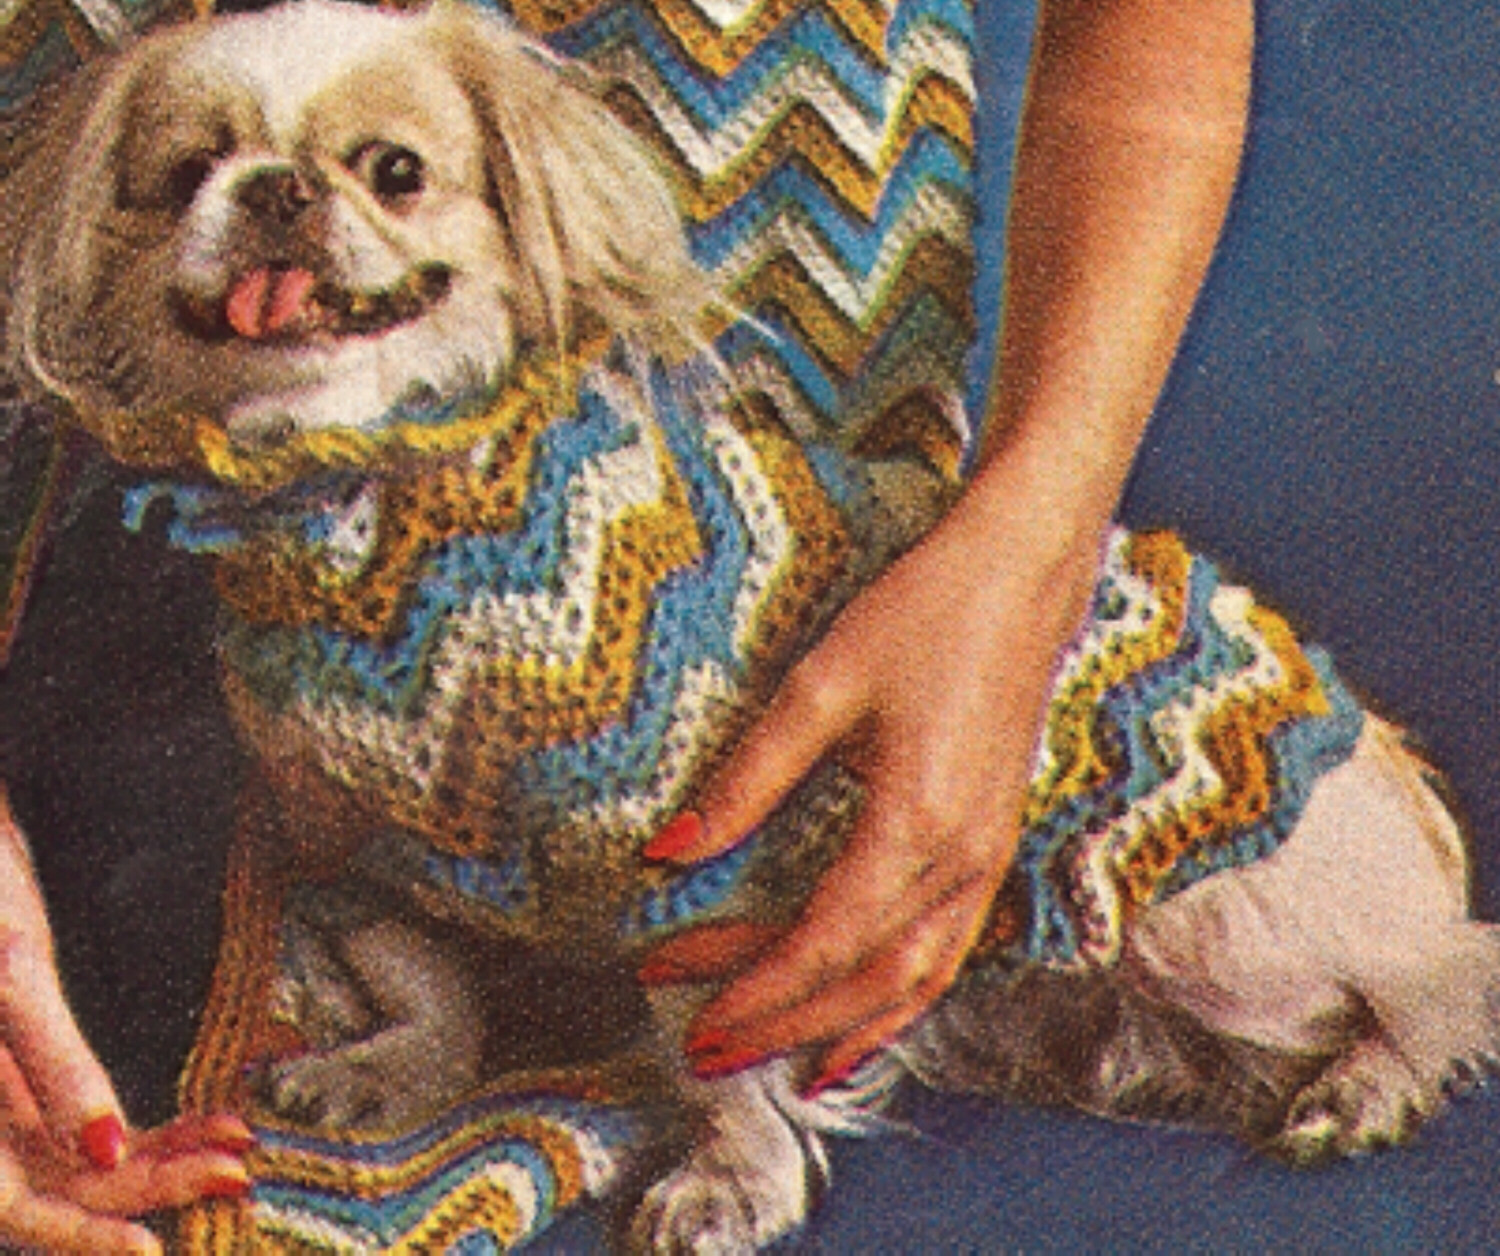 Crochet Dog Sweater Pattern Awesome Vintage Crochet Pattern to Make Dog Sweater Coat Jibber Of Marvelous 47 Images Crochet Dog Sweater Pattern